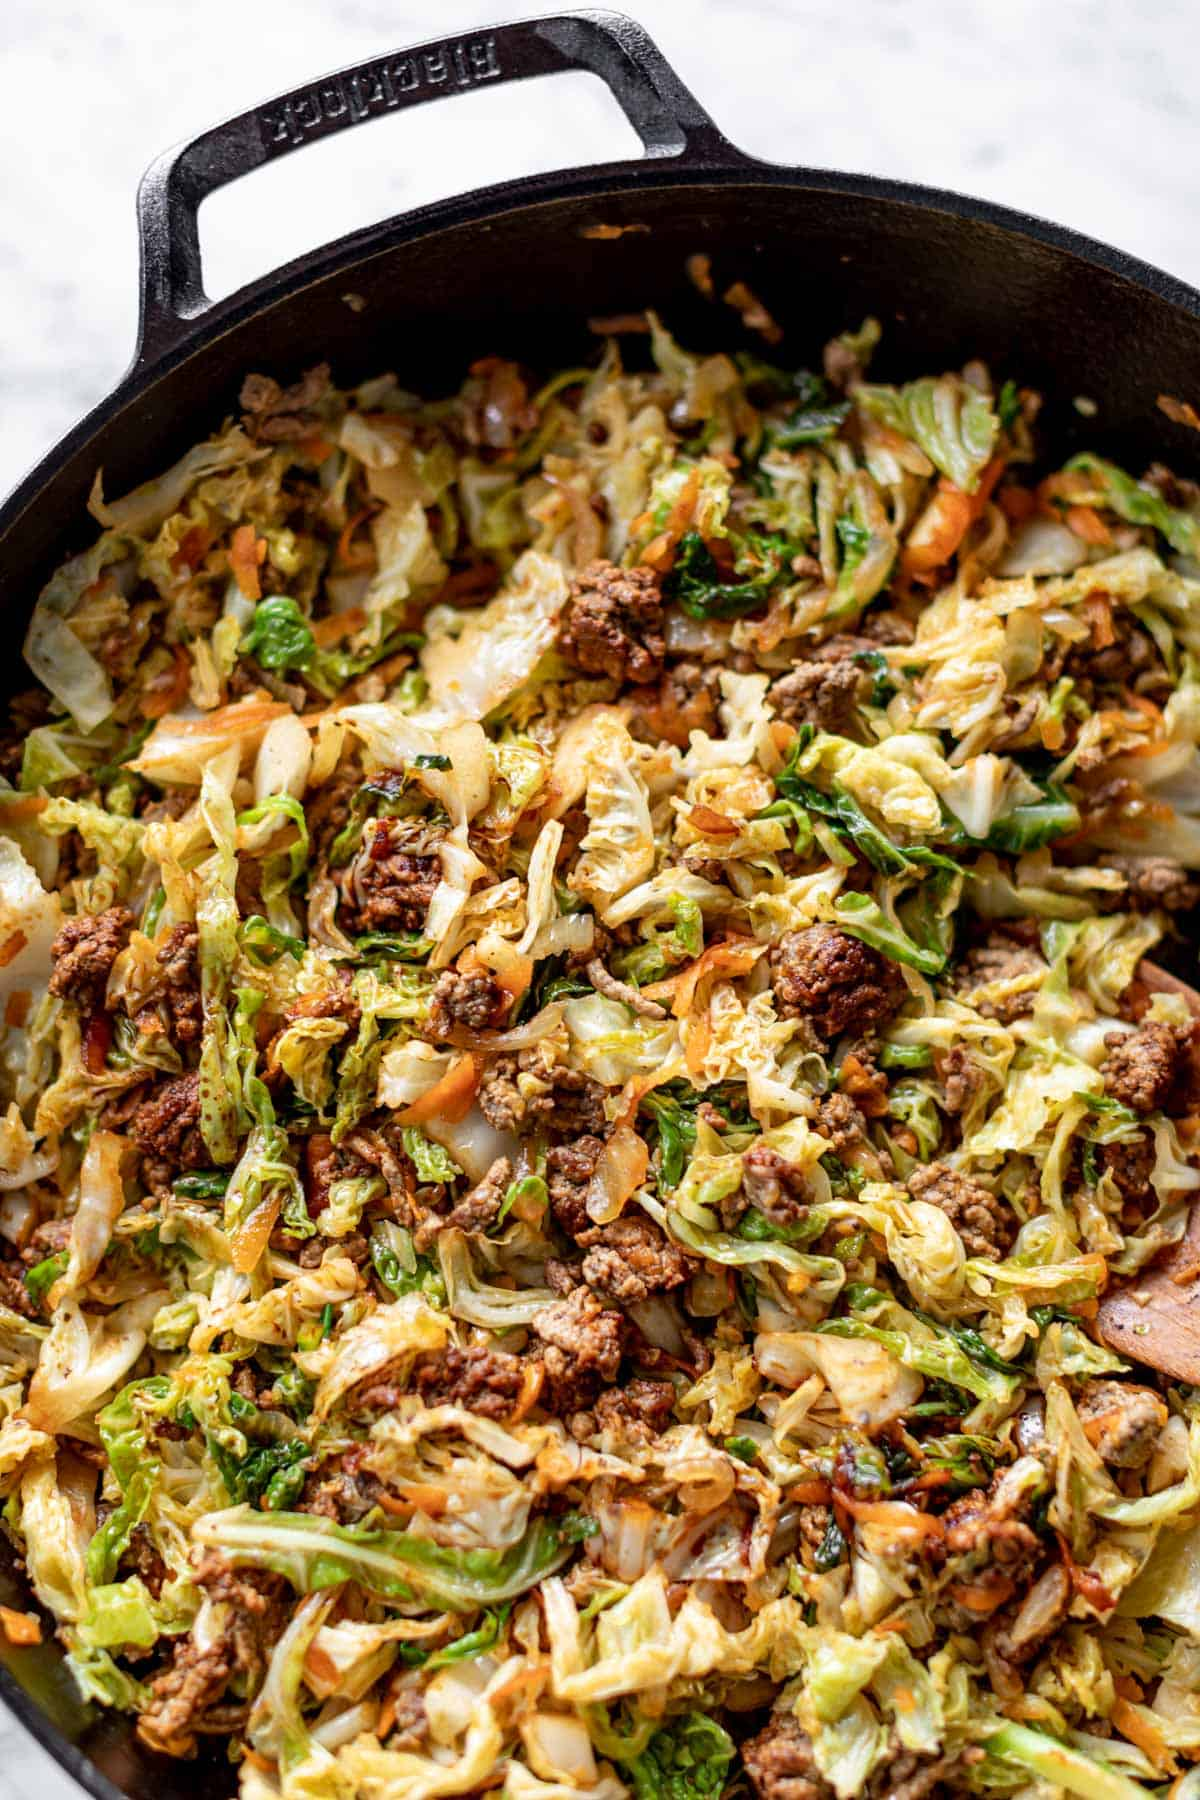 Beef Cabbage Stir Fry